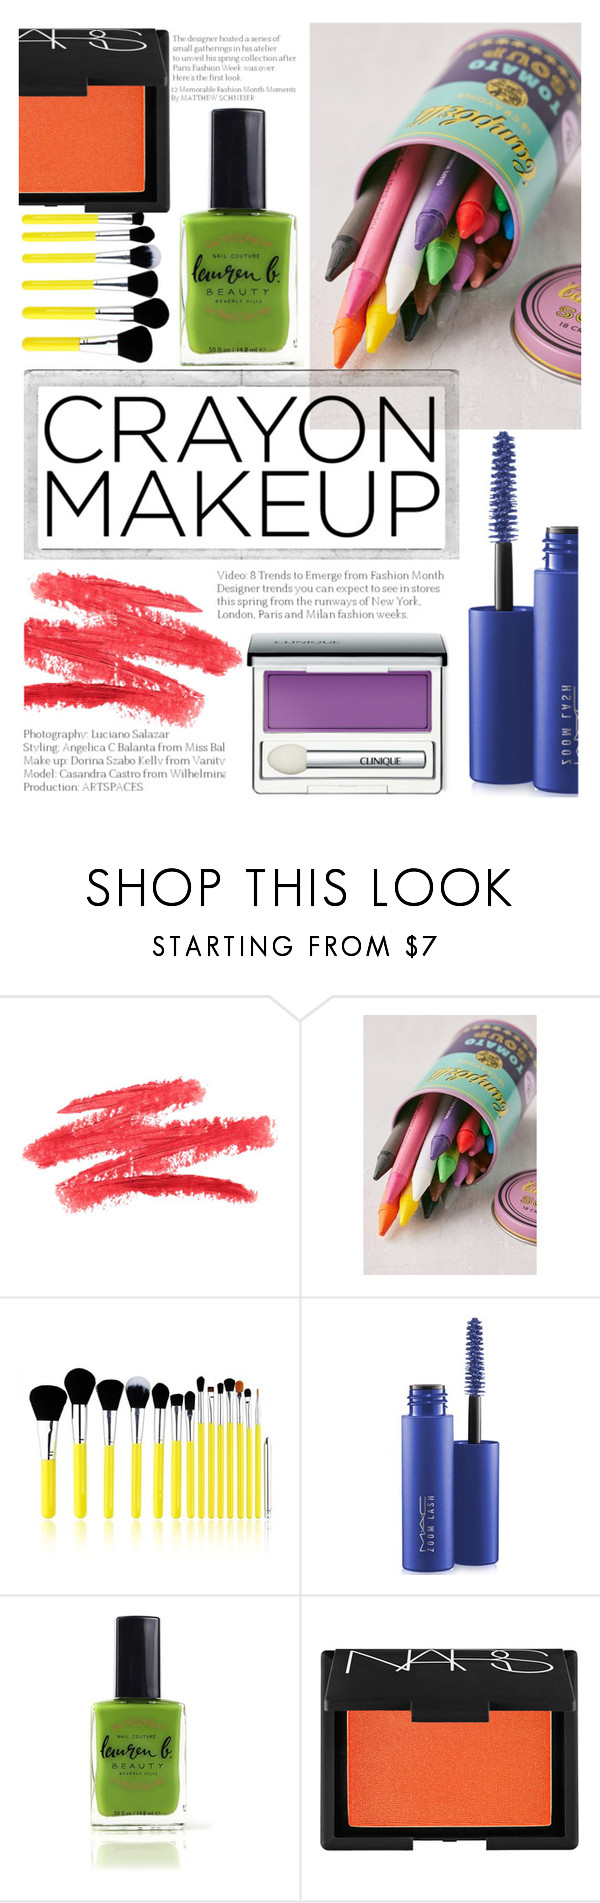 """crayon makeup"" by natsure ❤ liked on Polyvore featuring beauty, Urban Outfitters, Polaroid, Bliss & Grace, MAC Cosmetics, Lauren B. Beauty, NARS Cosmetics, Clinique and Color"